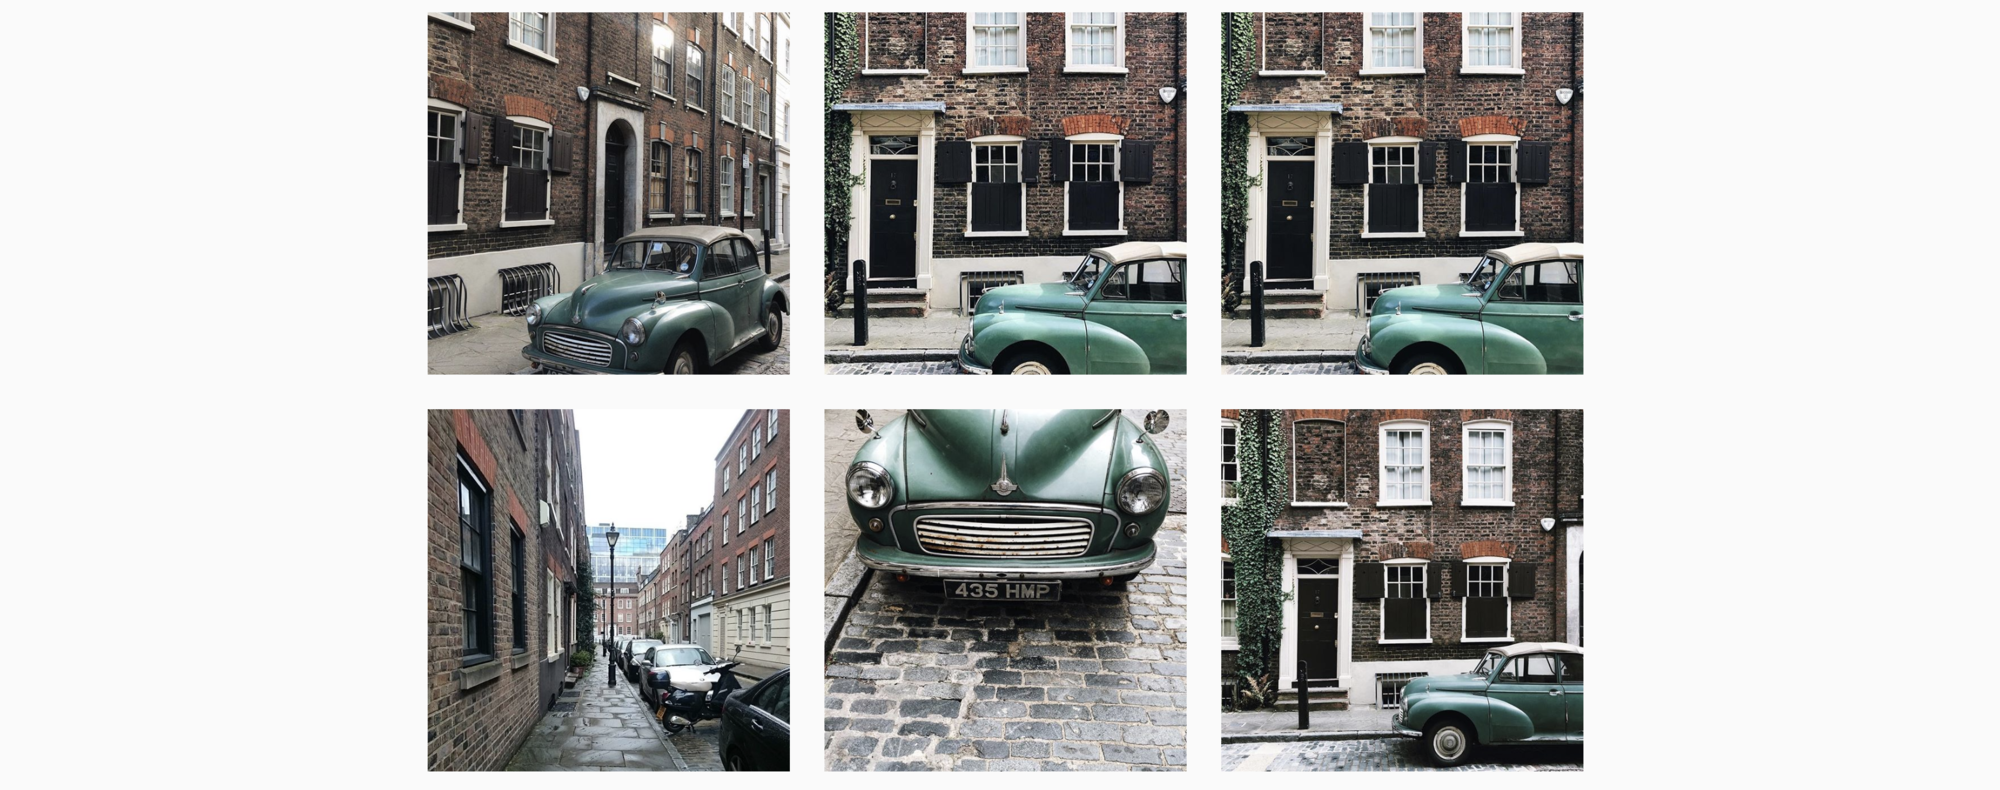 Elder Street in London